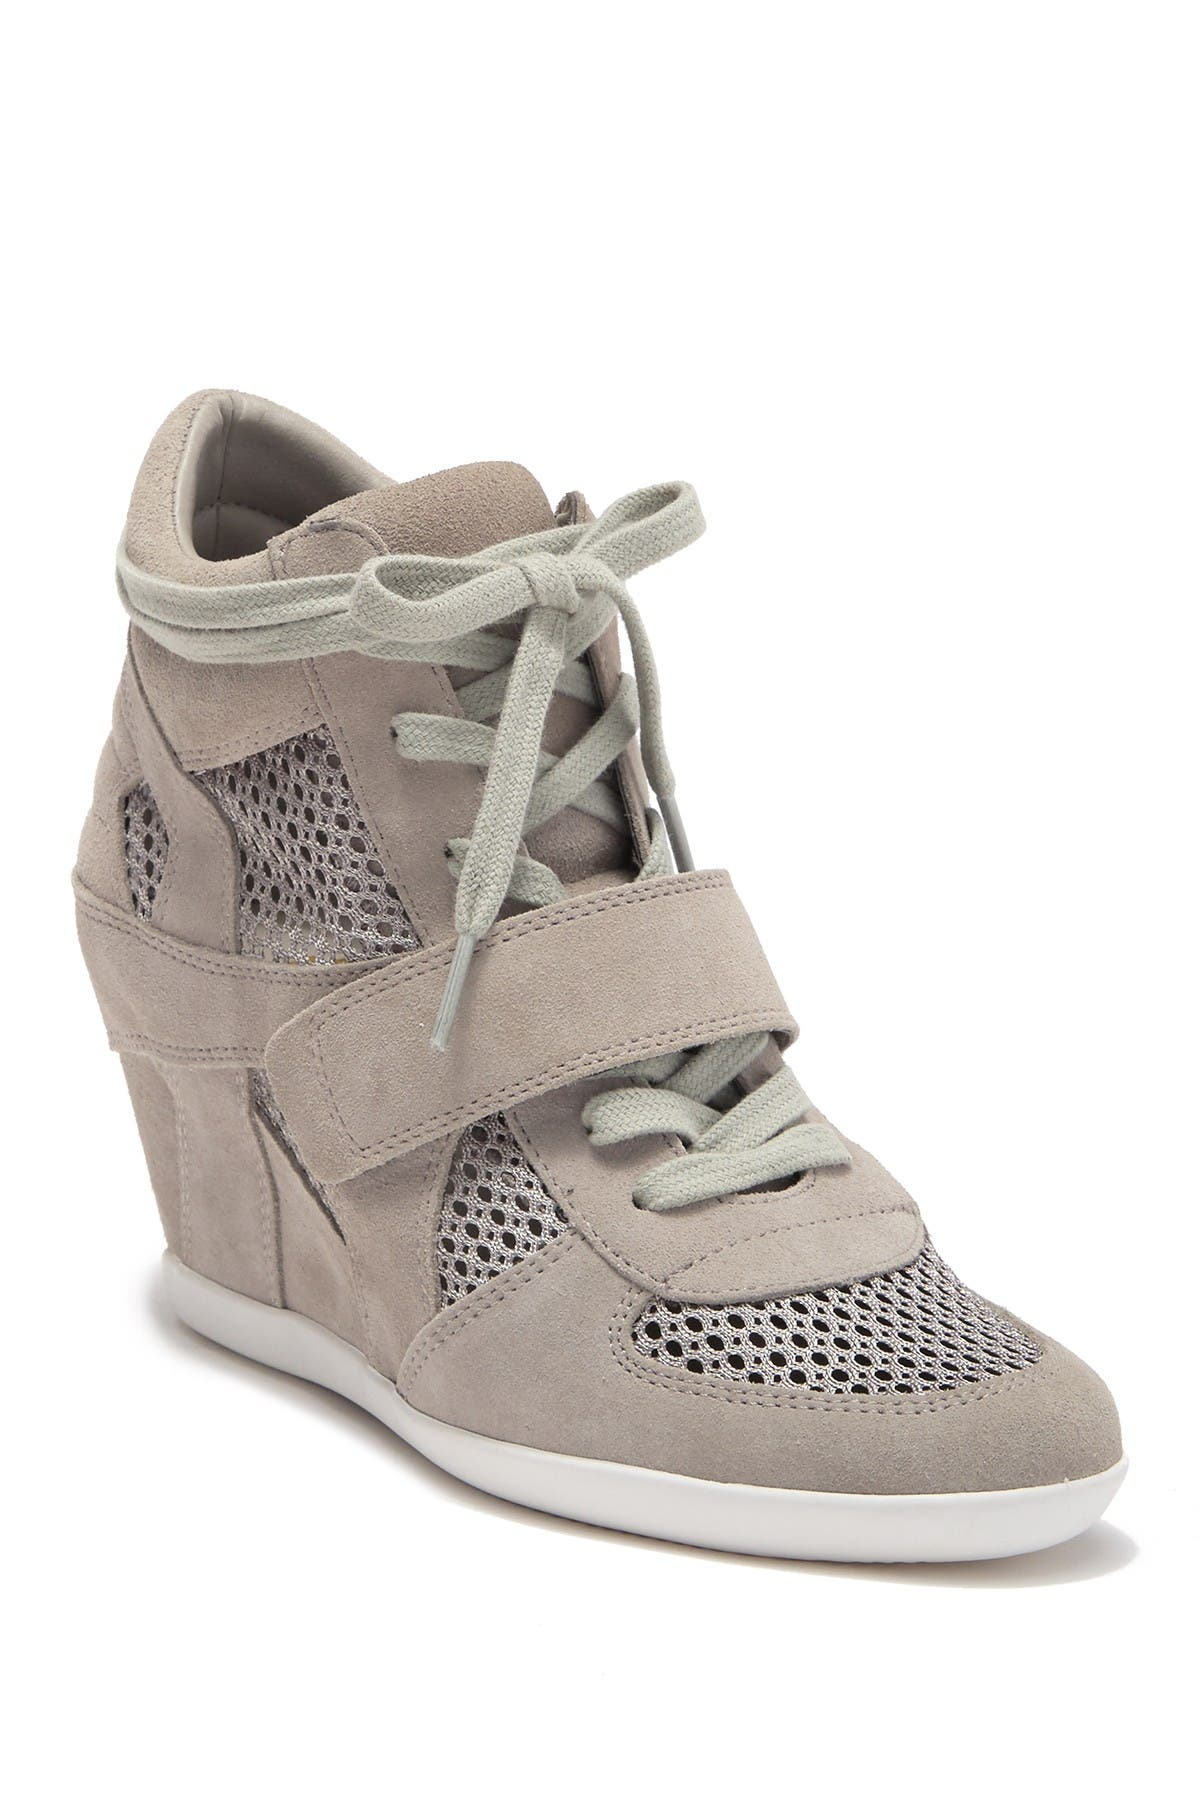 Ash | Bowie Suede Perforated Wedge